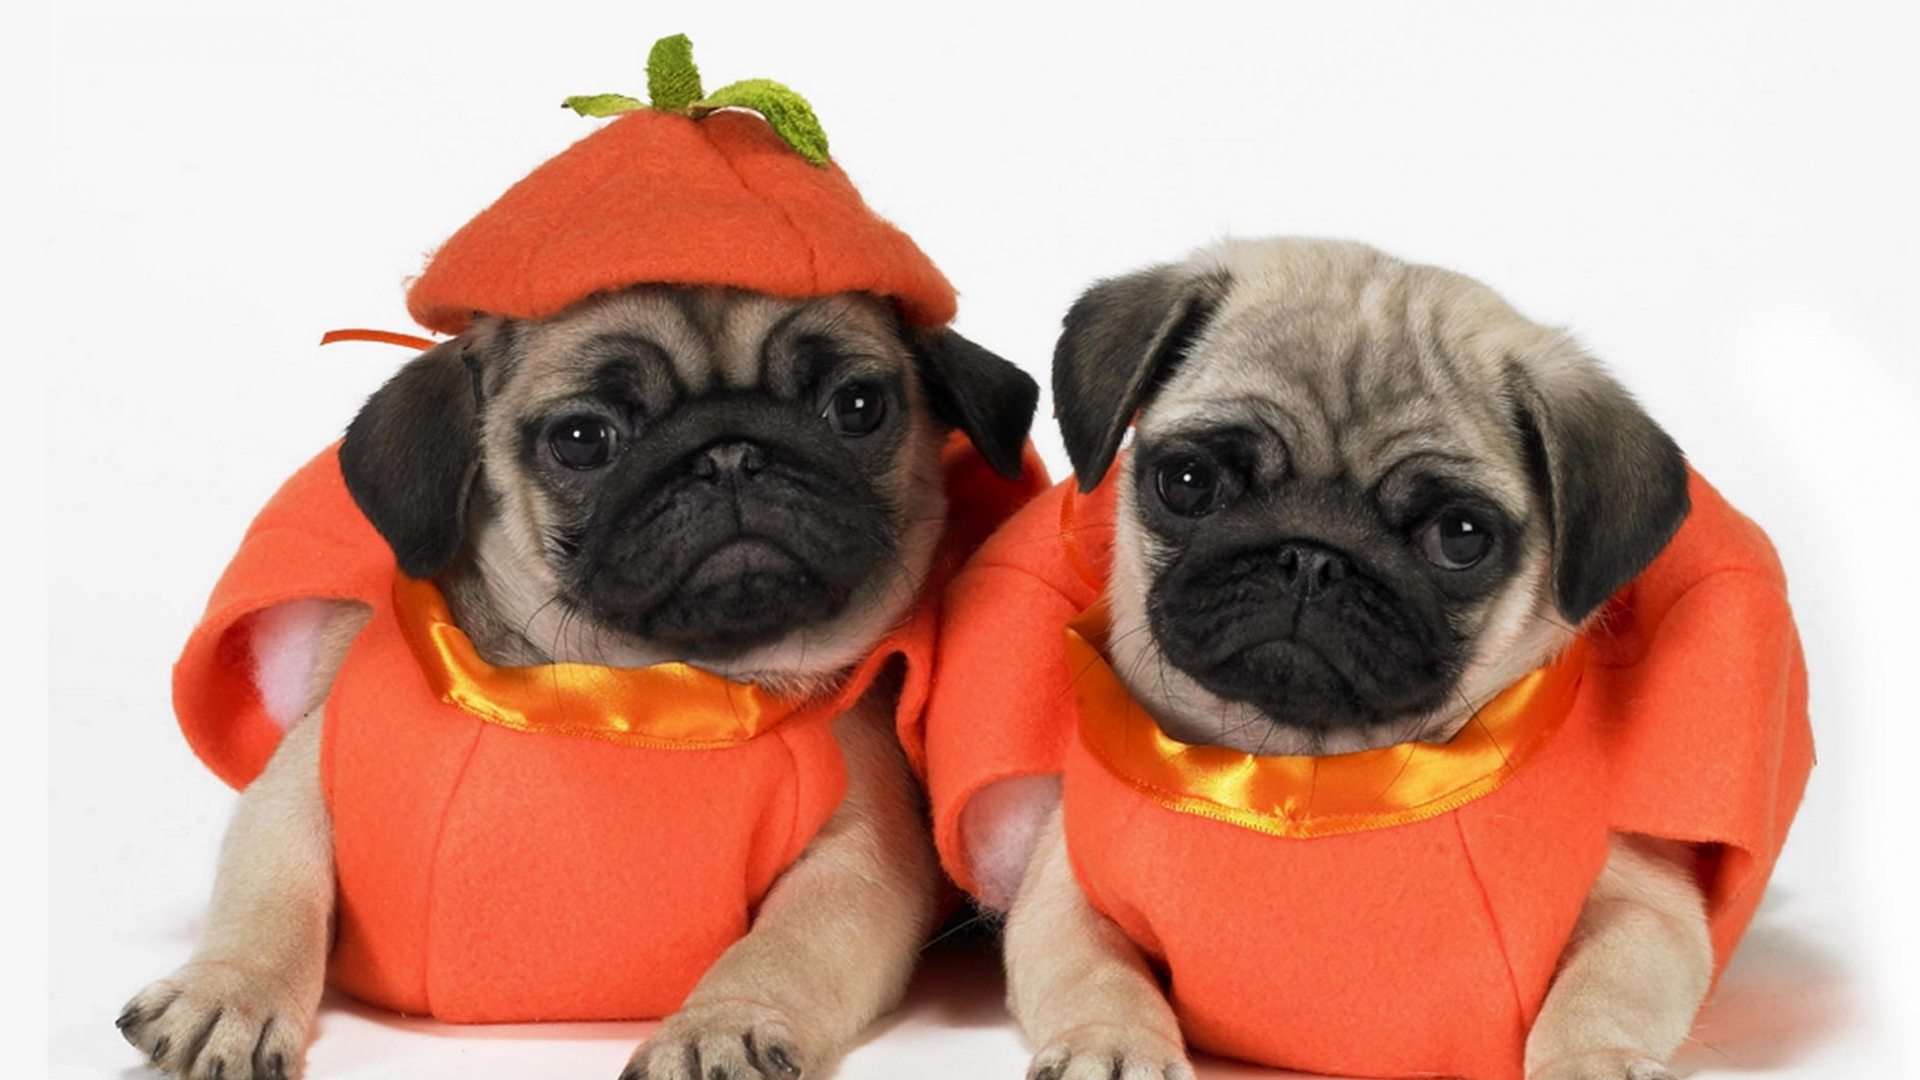 Cute Wallpapers 1080p Beagles Download Wallpaper 1920x1080 Pugs Dogs Puppies Costumes